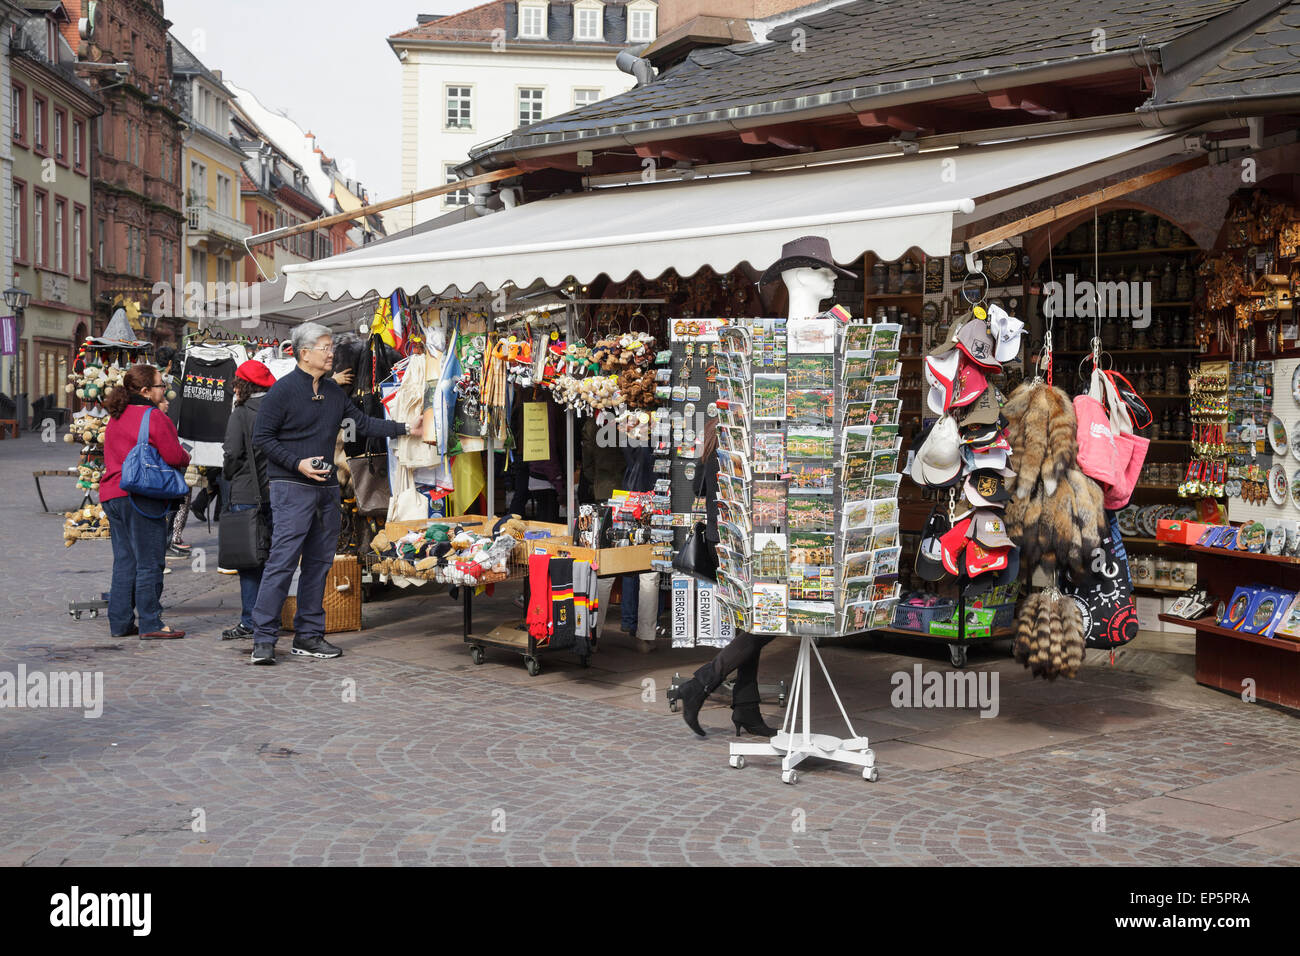 tourists shopping for souvenirs on the Marktplatz, Heidelberg, Baden-Württemberg, Germany - Stock Image